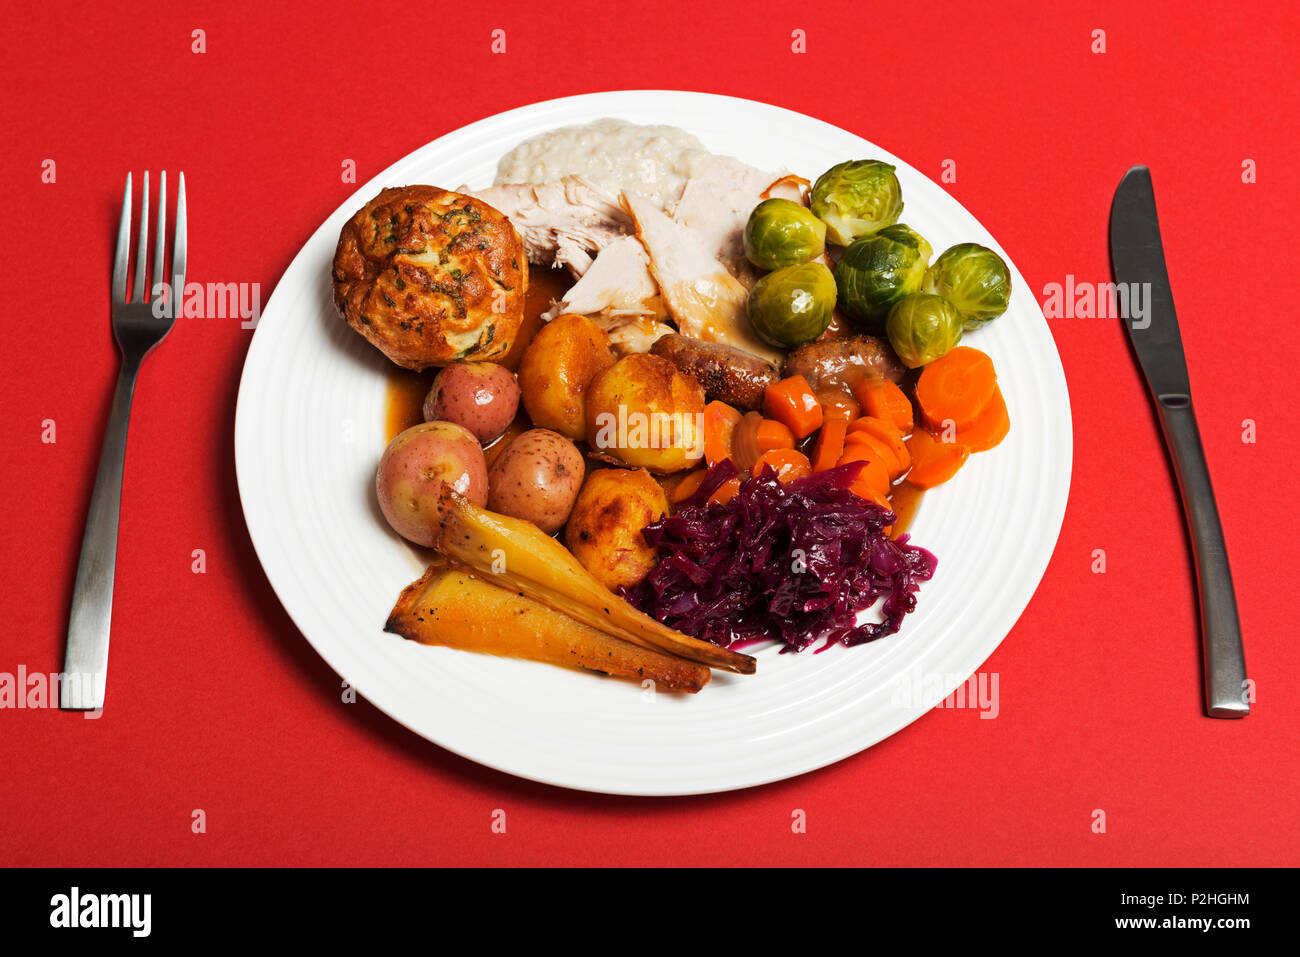 Traditional English Christmas Dinner.Traditional British Christmas Dinner Stock Photo 208139952